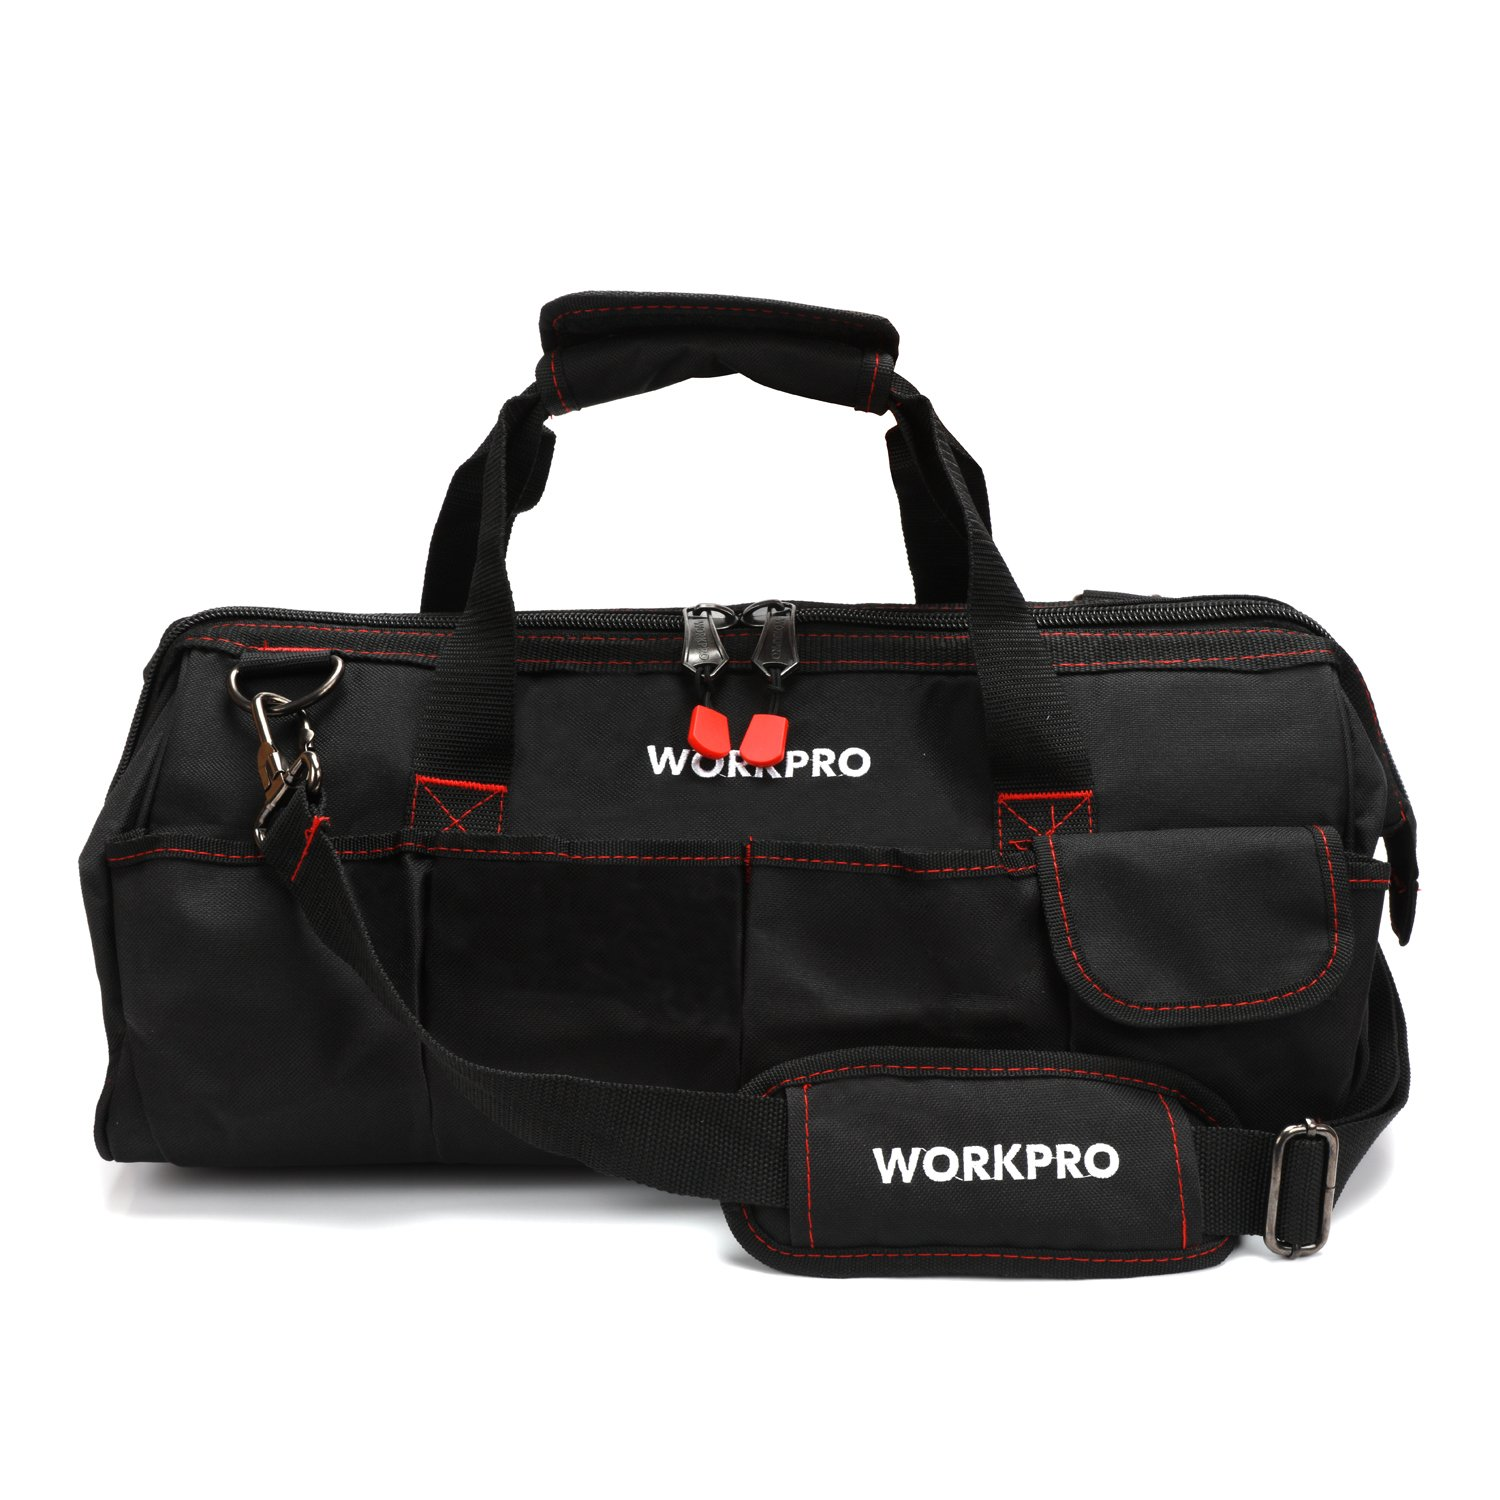 WORKPRO W081023A Close Top Storage Tool Bag, 18'', Black/Red by WORKPRO